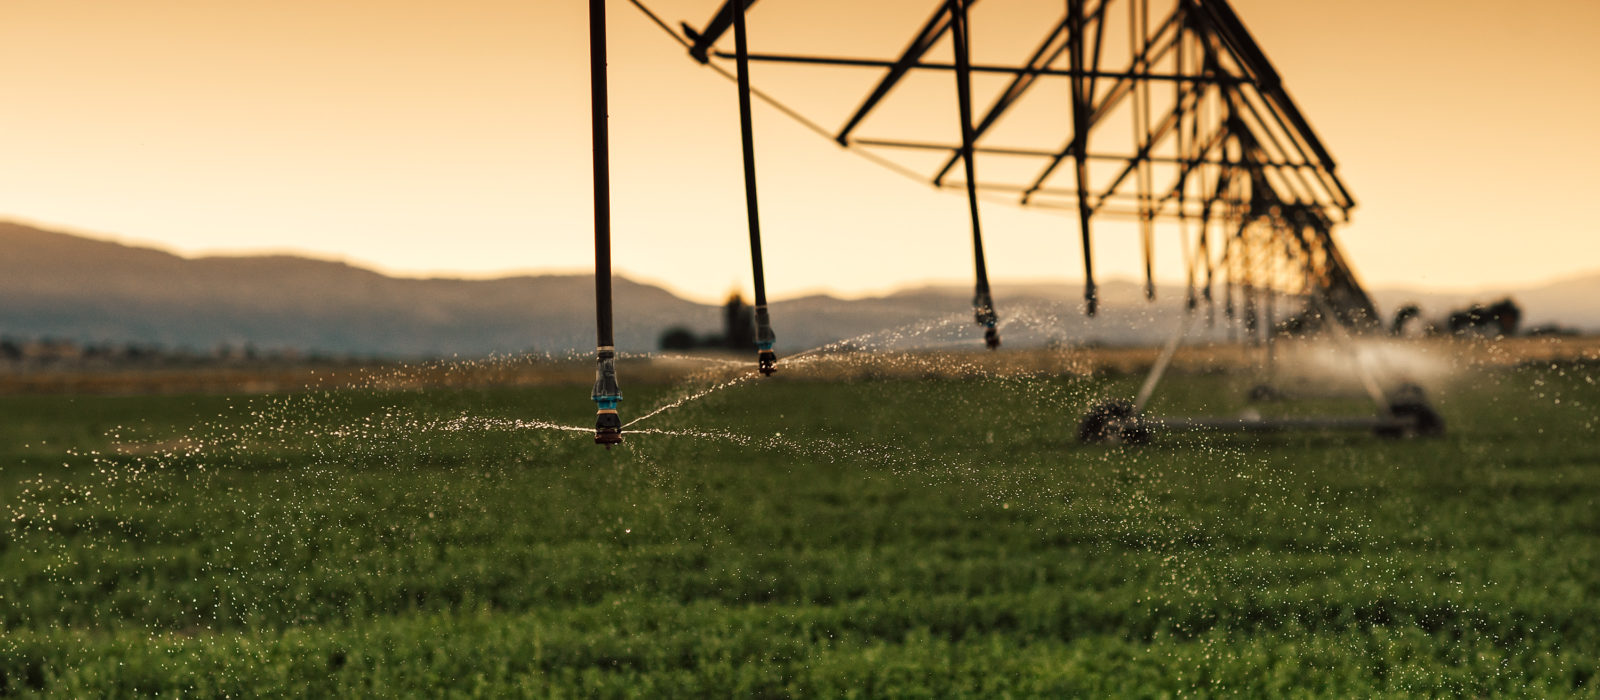 Alfalfa field being watered